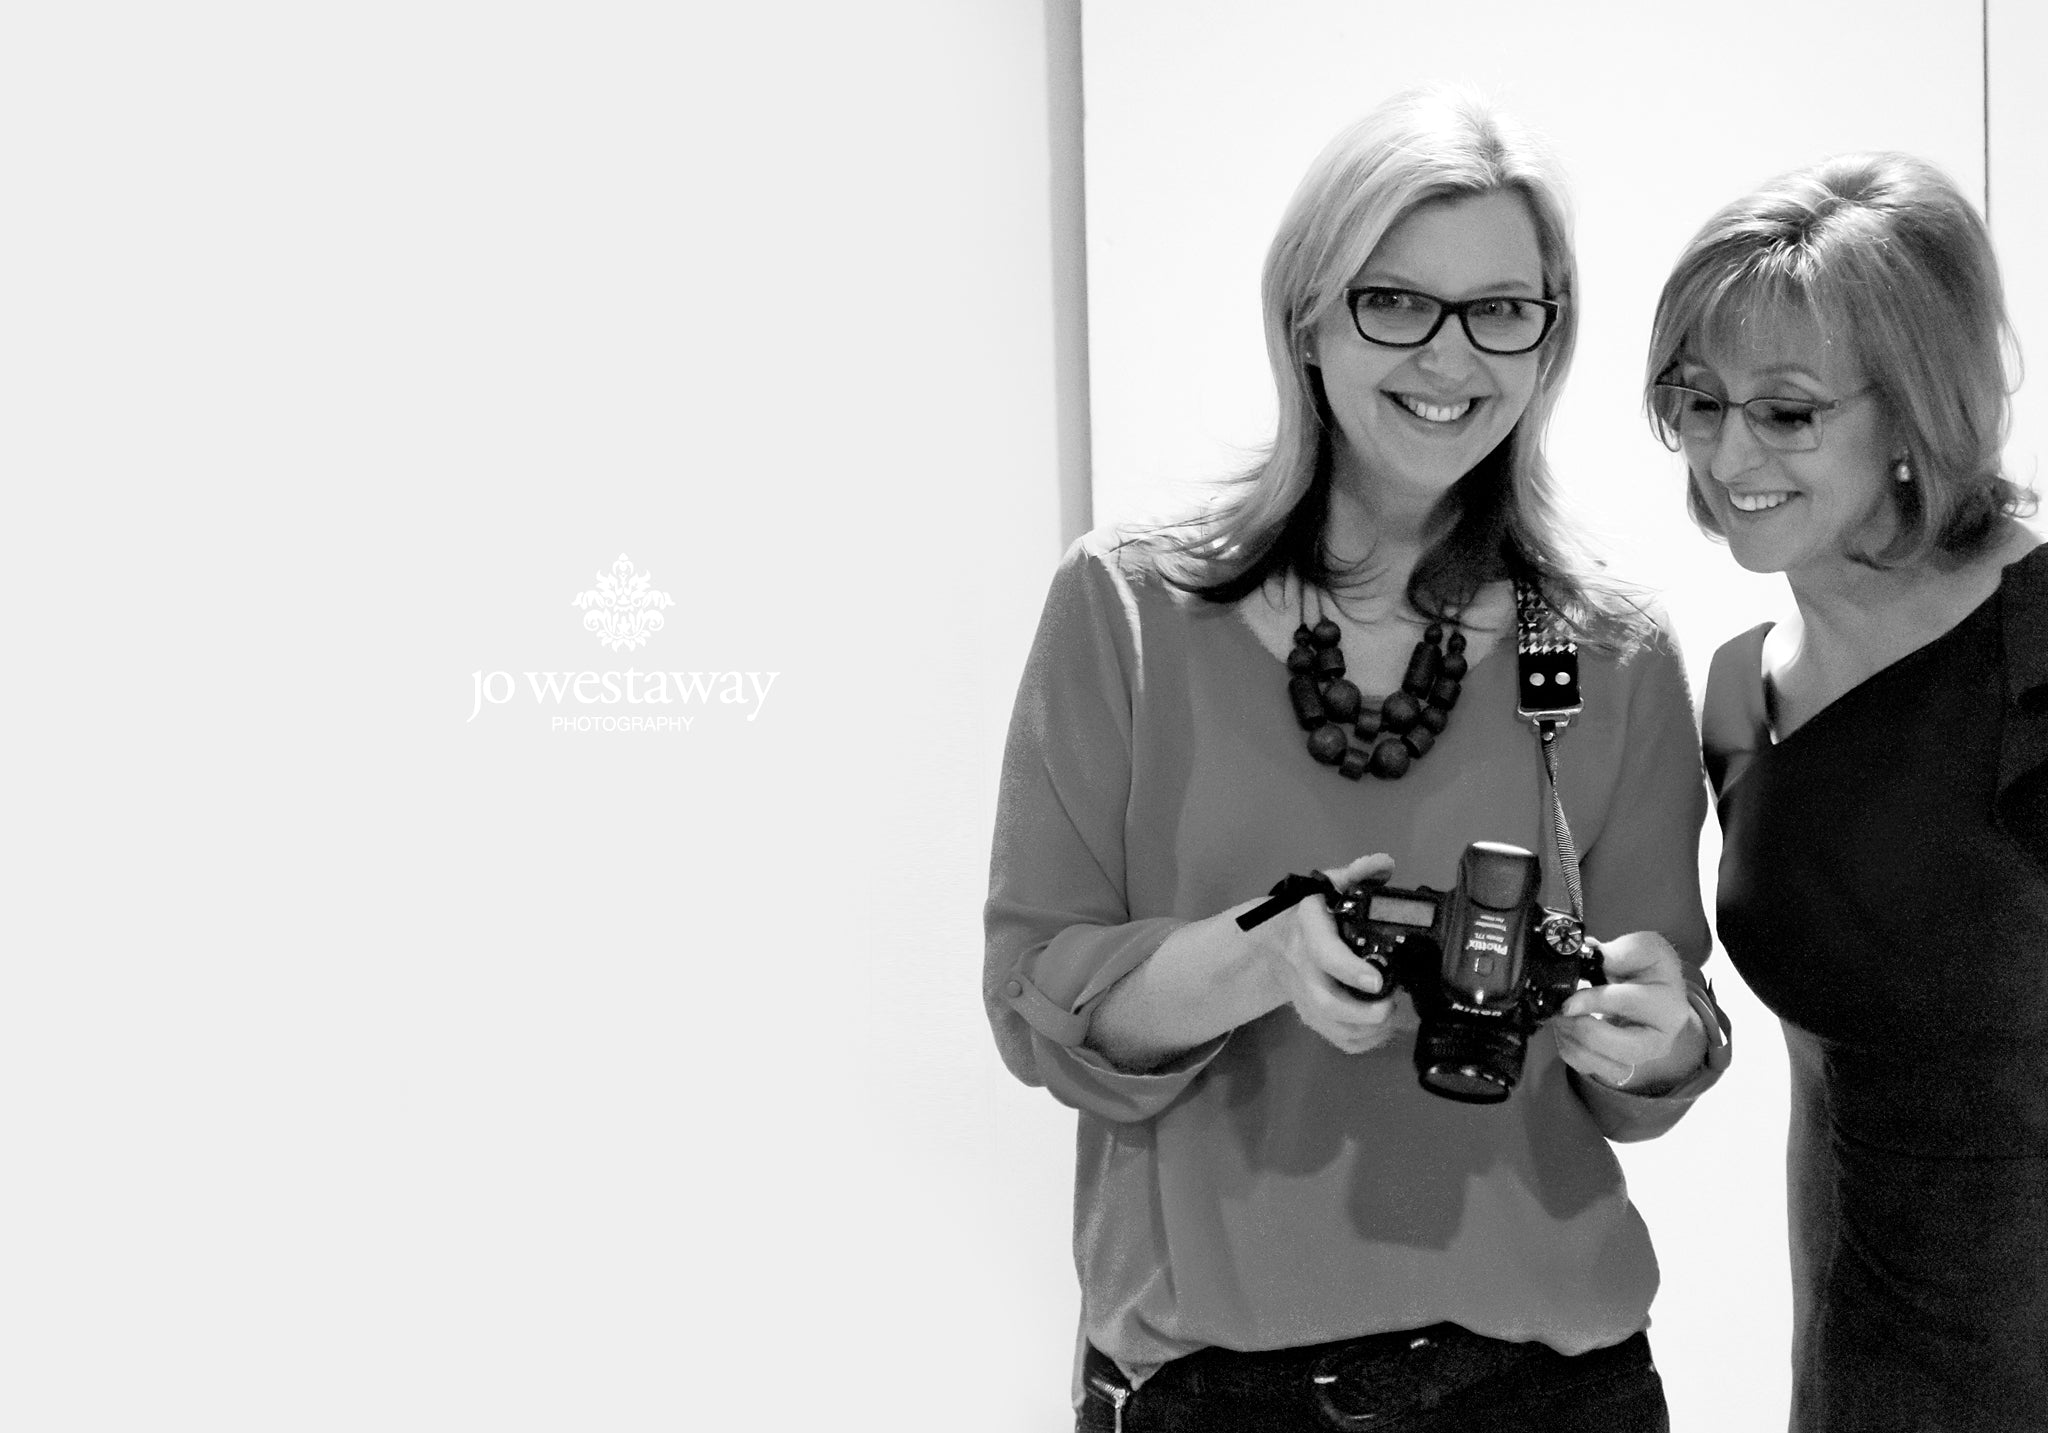 Personal branding portraits and photos for businesswomen - Brisbane photography studio